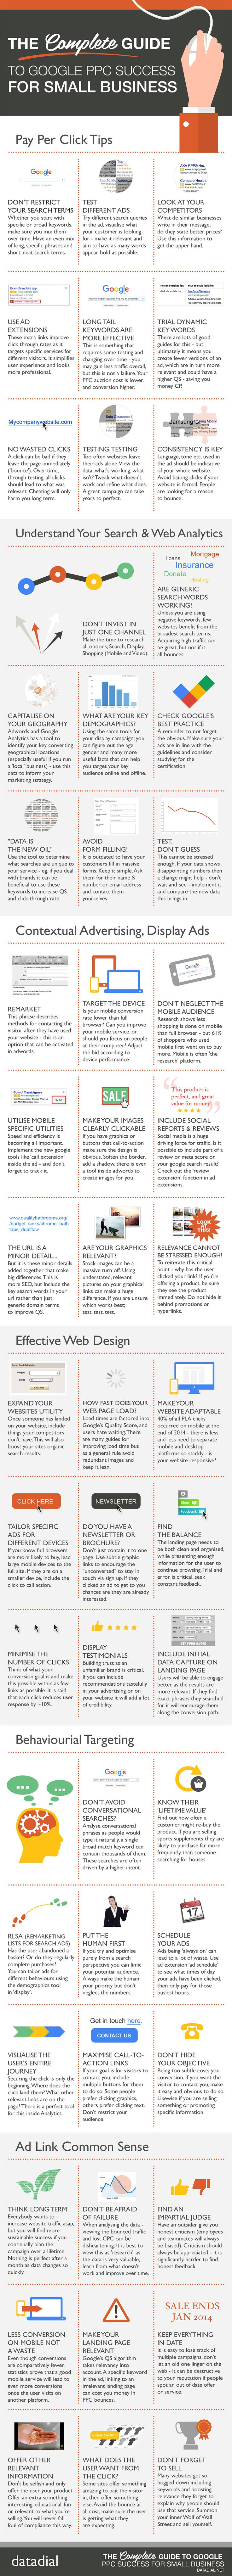 53 Steps to Google Adwords Success: The Ultimate Pay per Click Guide [INFOGRAPHIC]